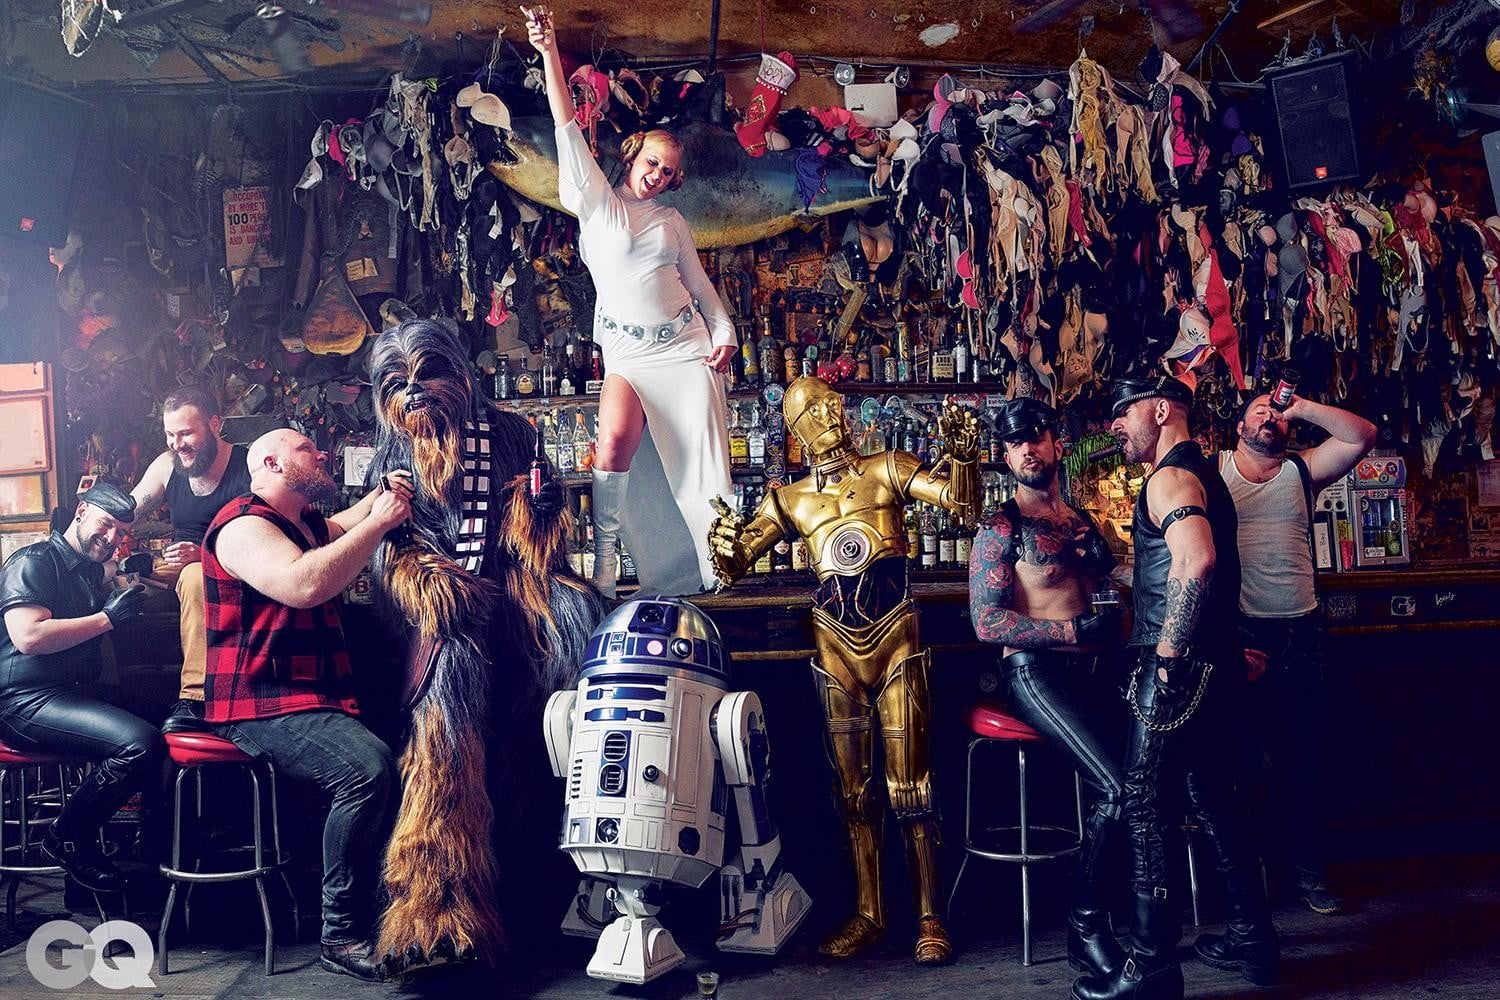 amy schumer risque star wars photo shoot gq is the funniest woman in galaxy  mark seliger 02